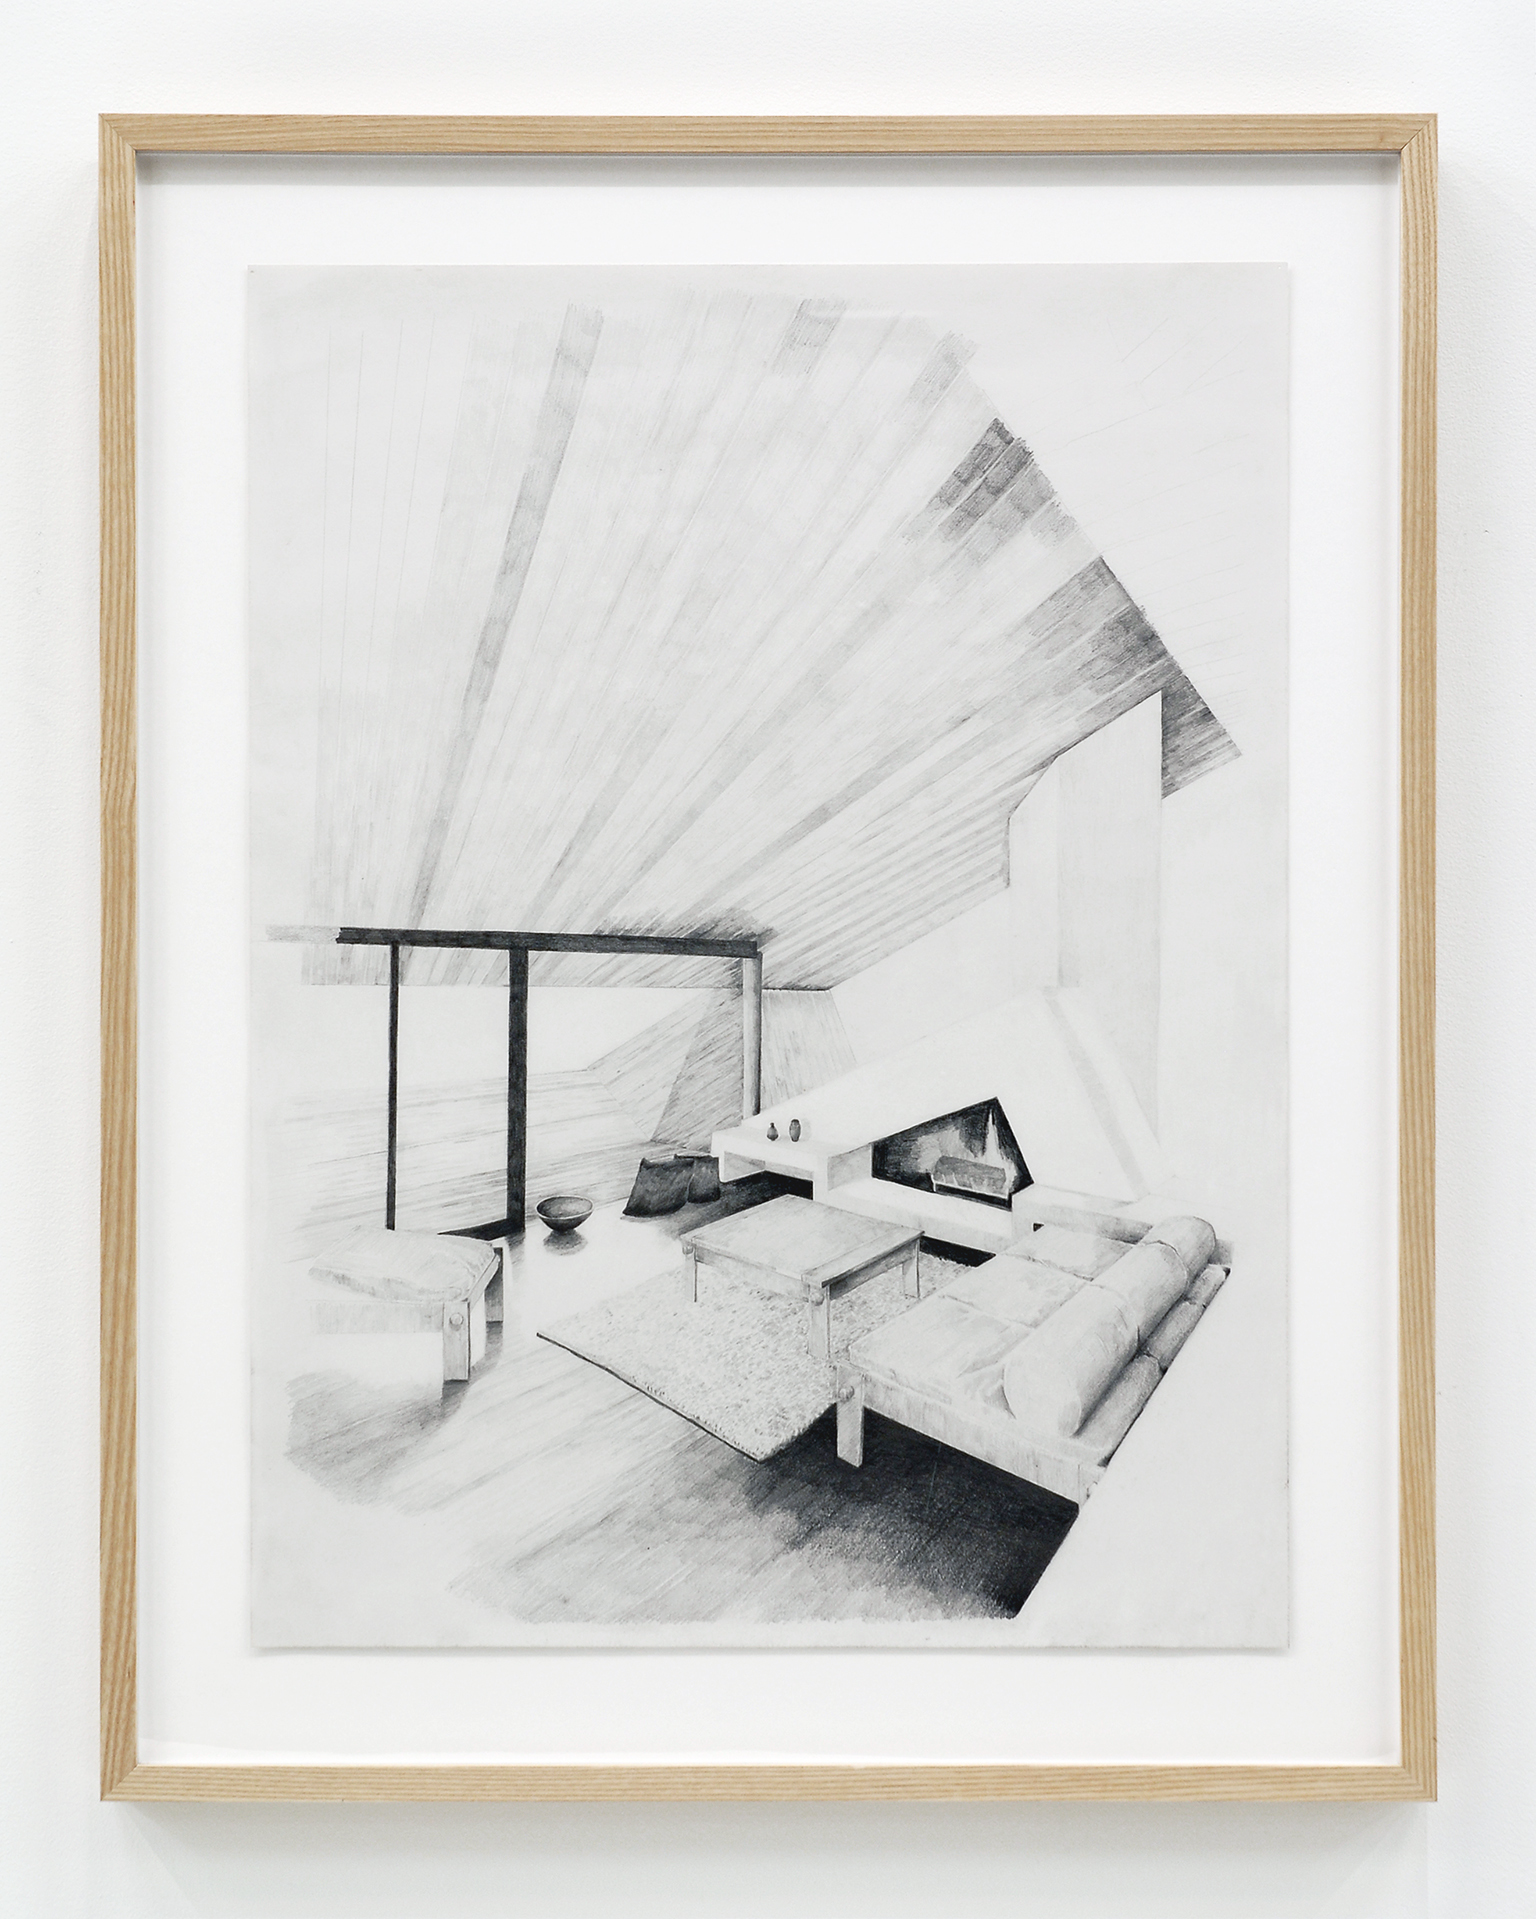 Alex Morrison, The Poetics of Grey (No. 5), 2007, graphite on paper, 29 x 23 in. (74 x 58 cm) by